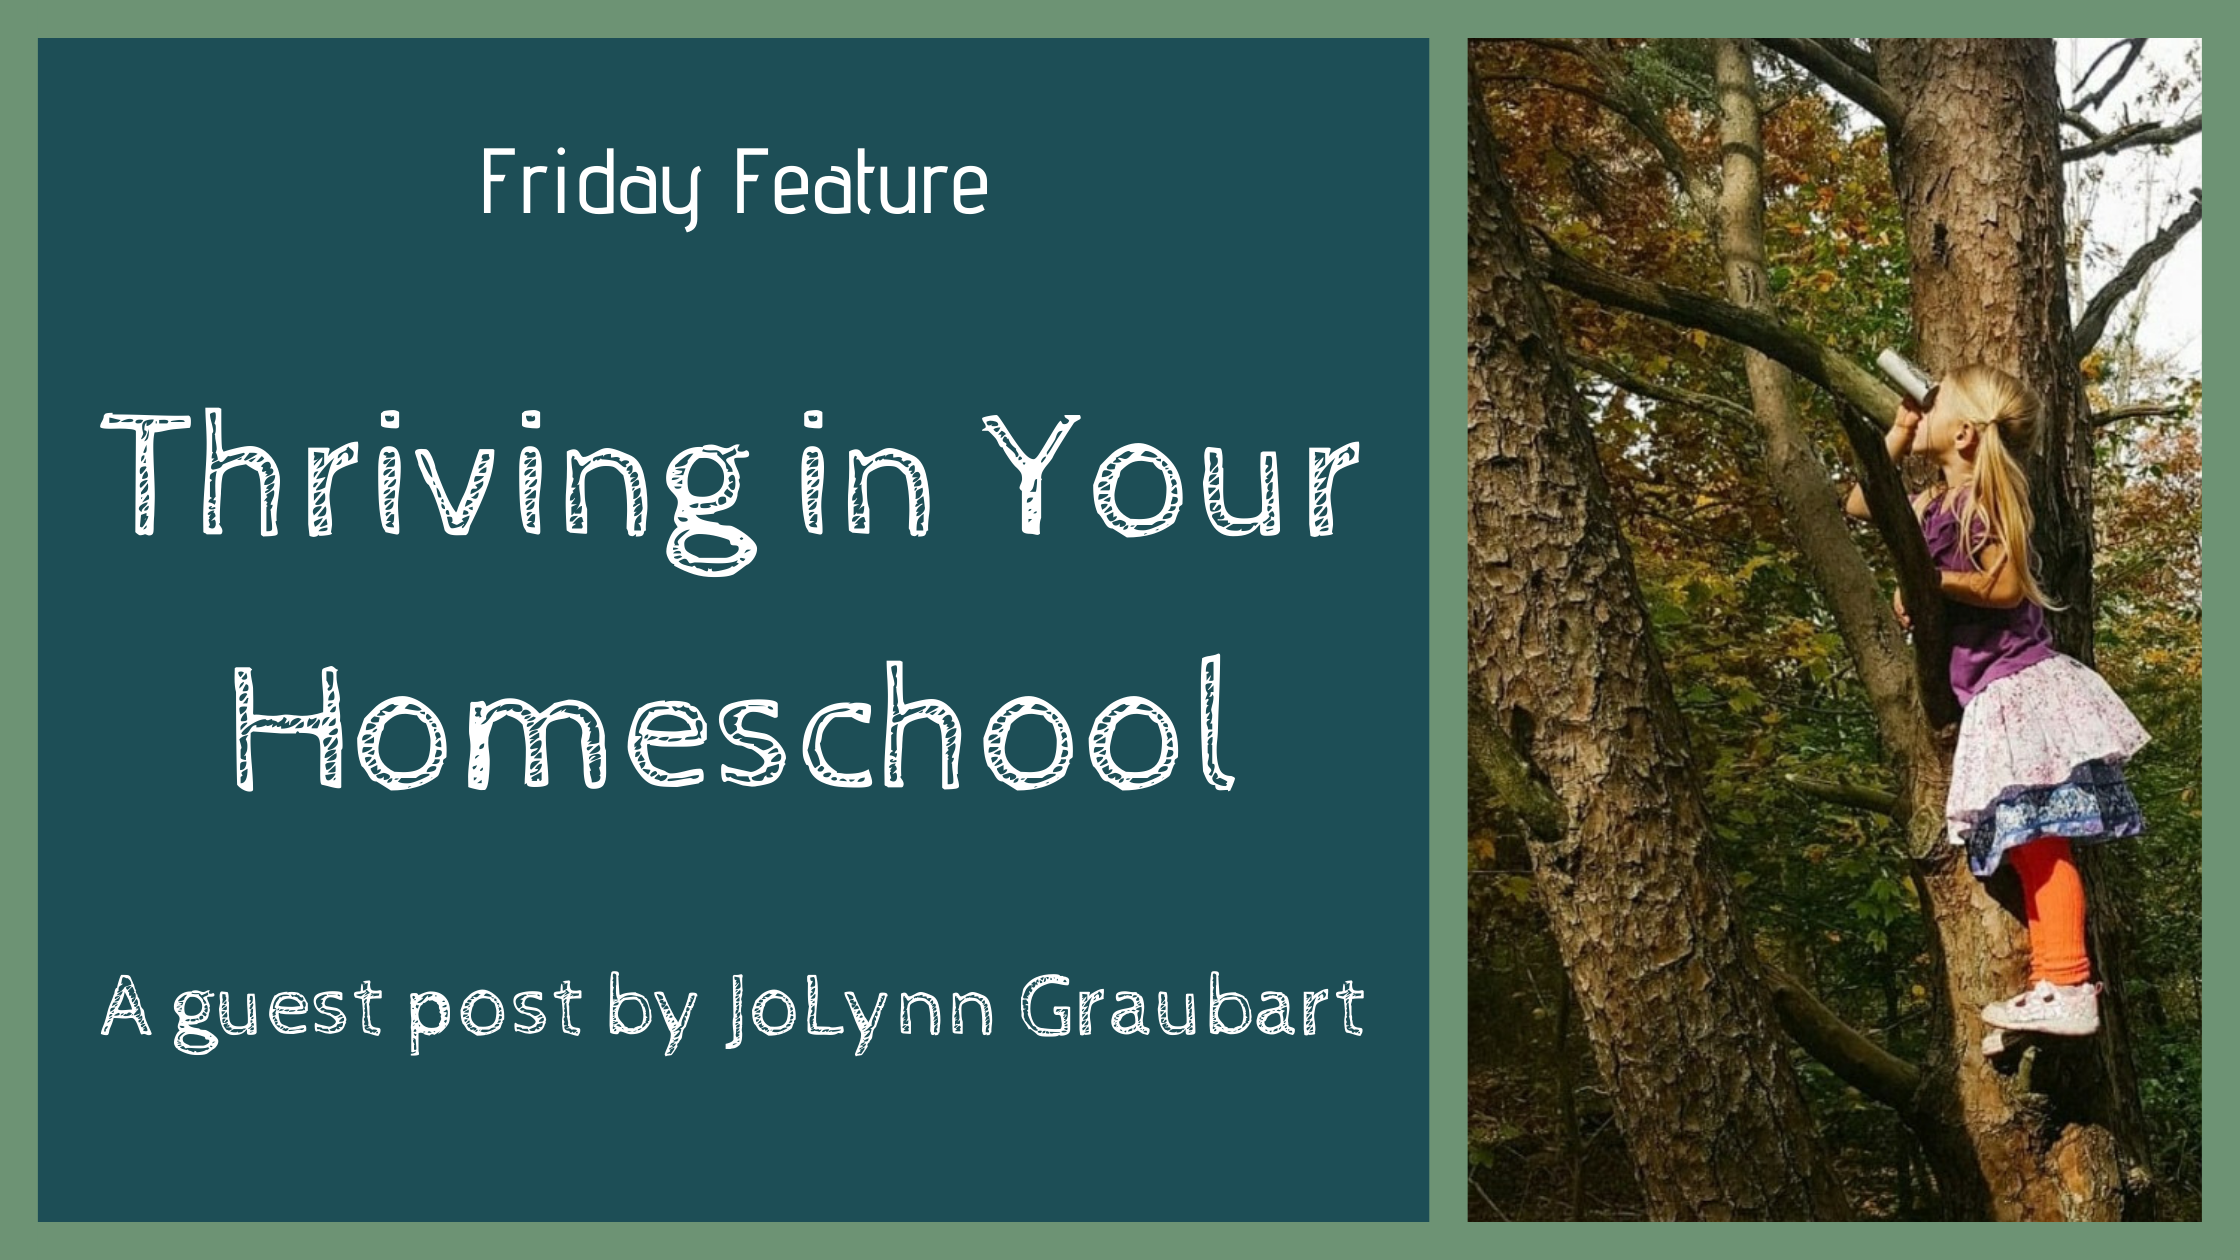 friday feature homeschool thriving web banner